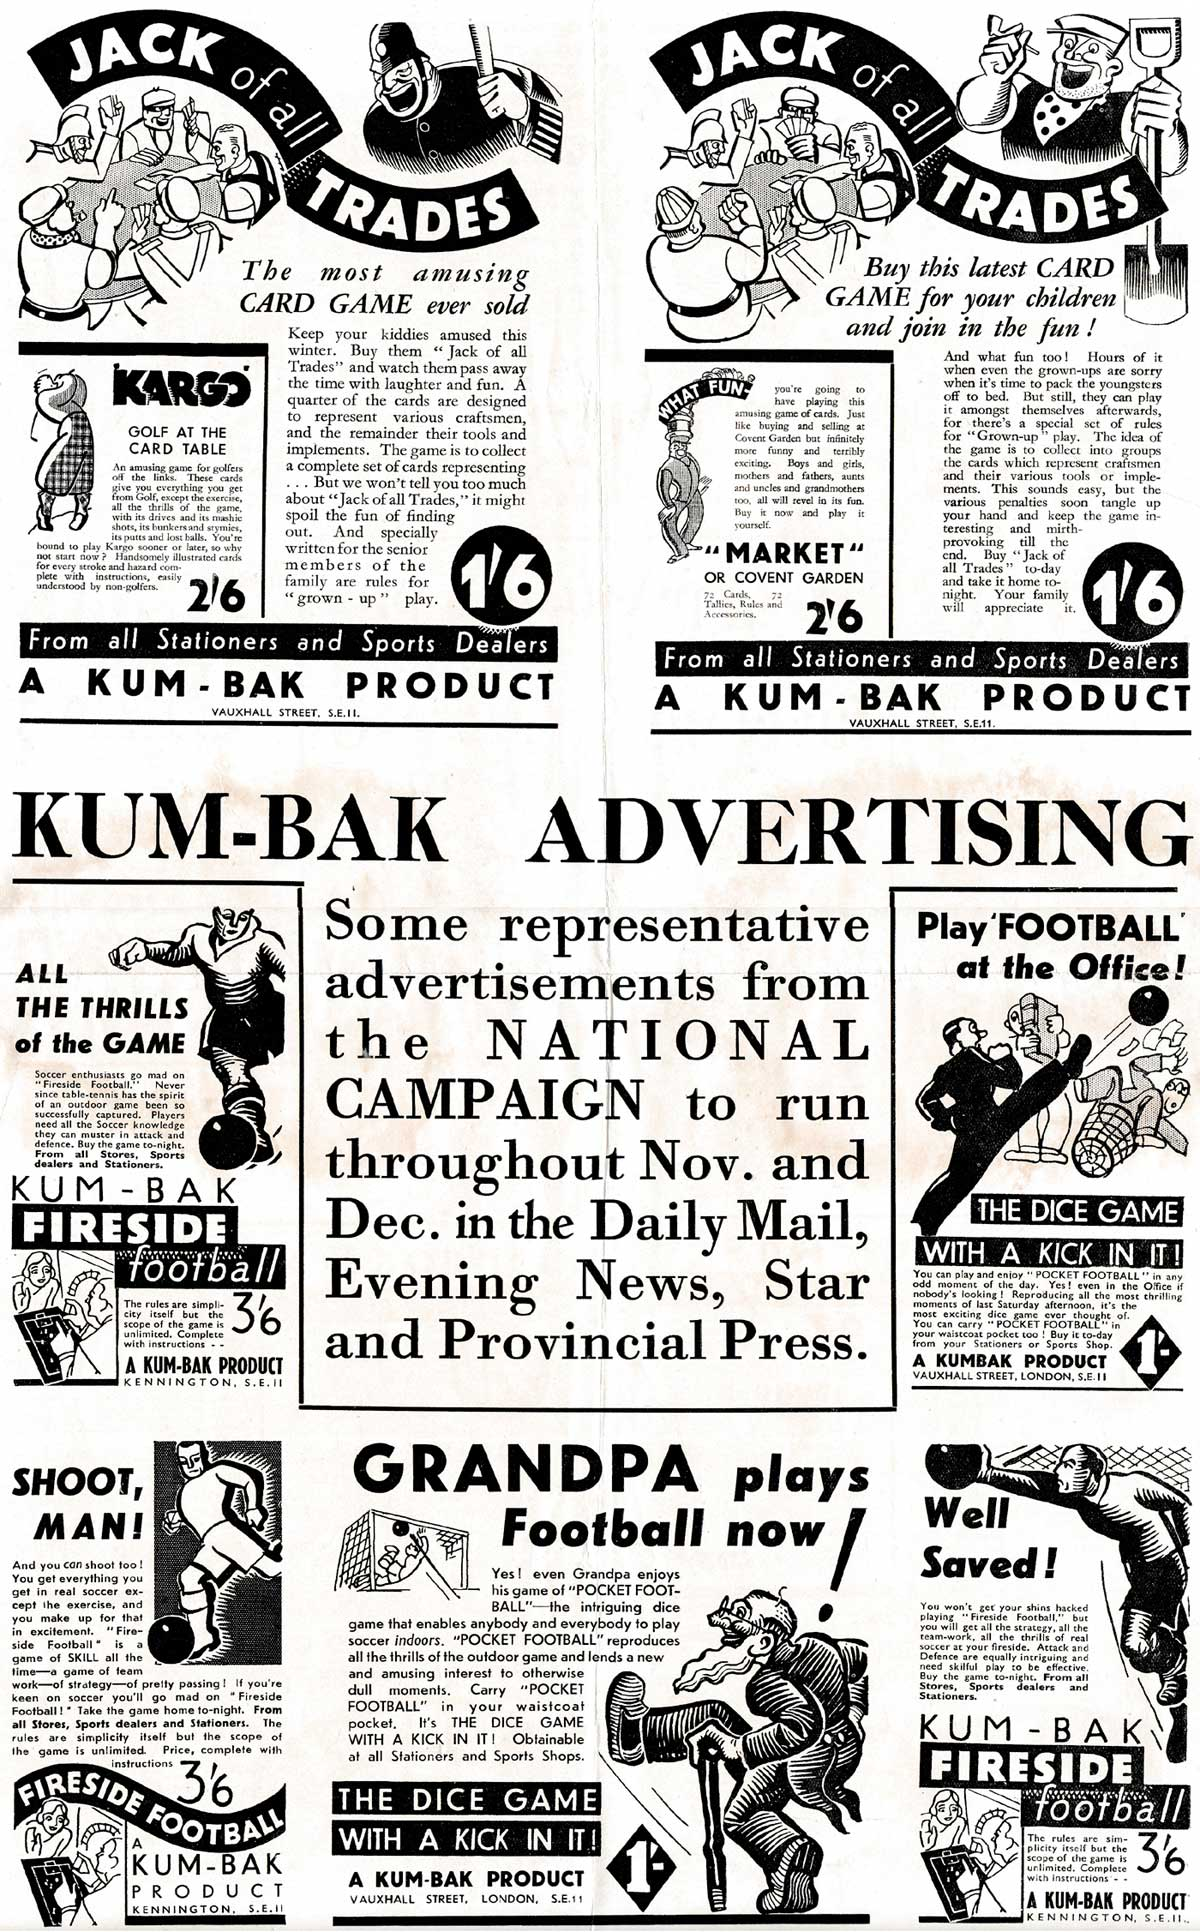 mail shot flyer from Kum-Bak in the mid 1930s